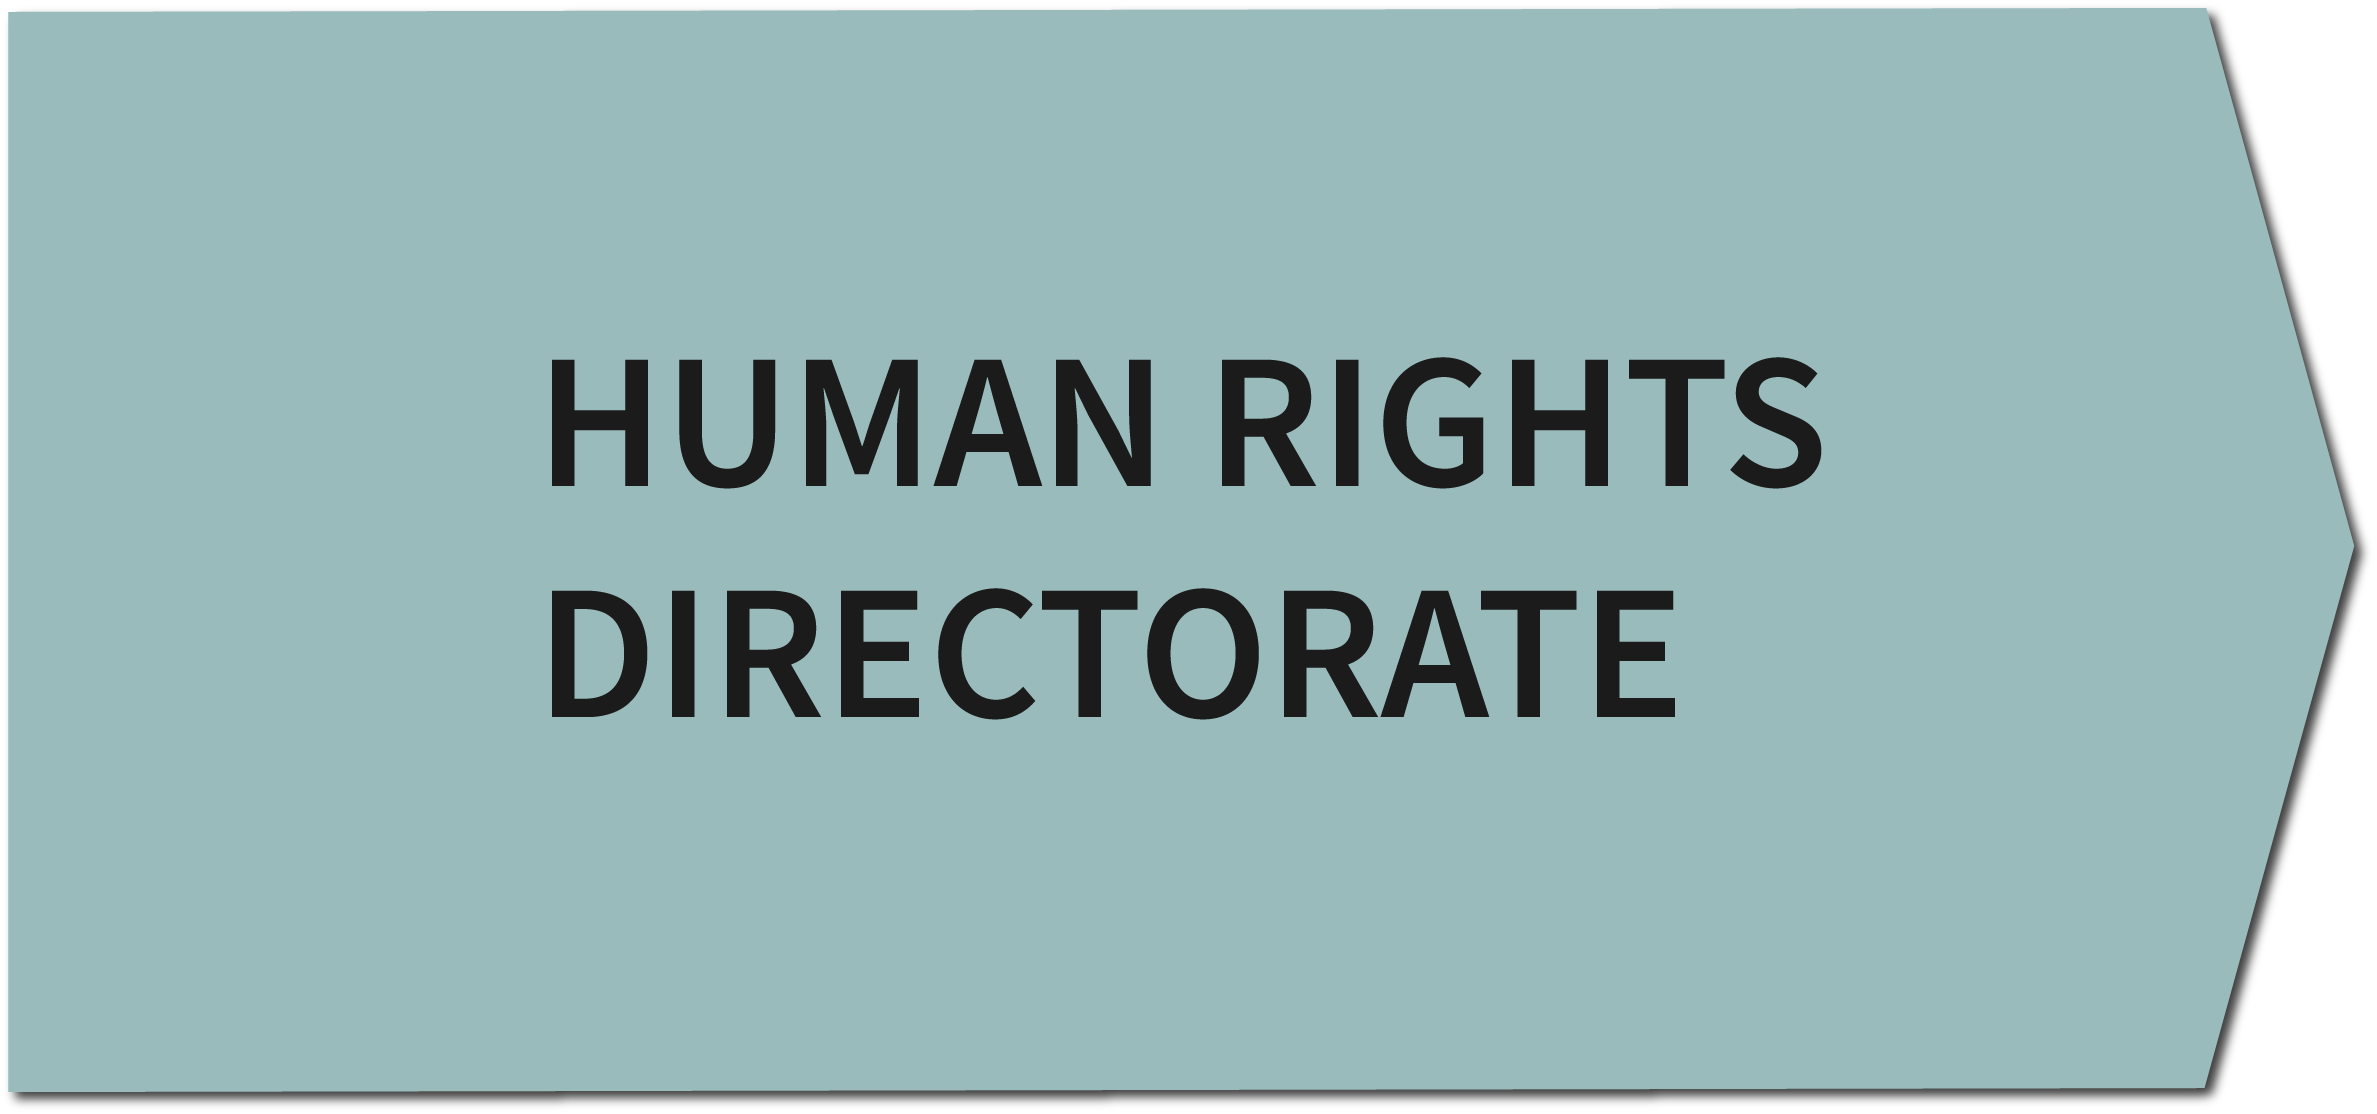 Human Rights Directorate